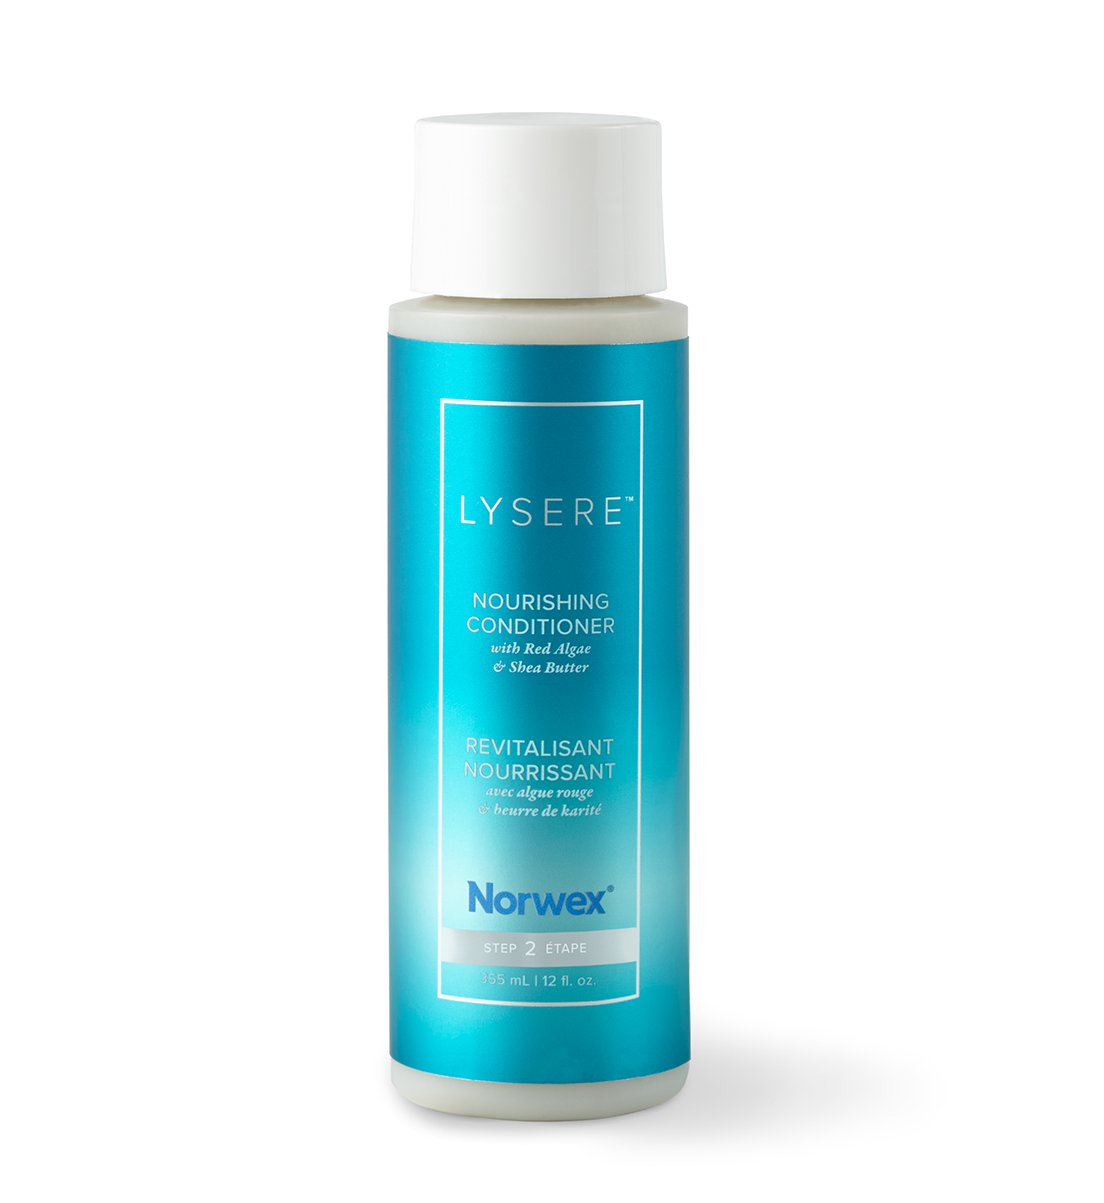 Lysere Nourishing Conditioner